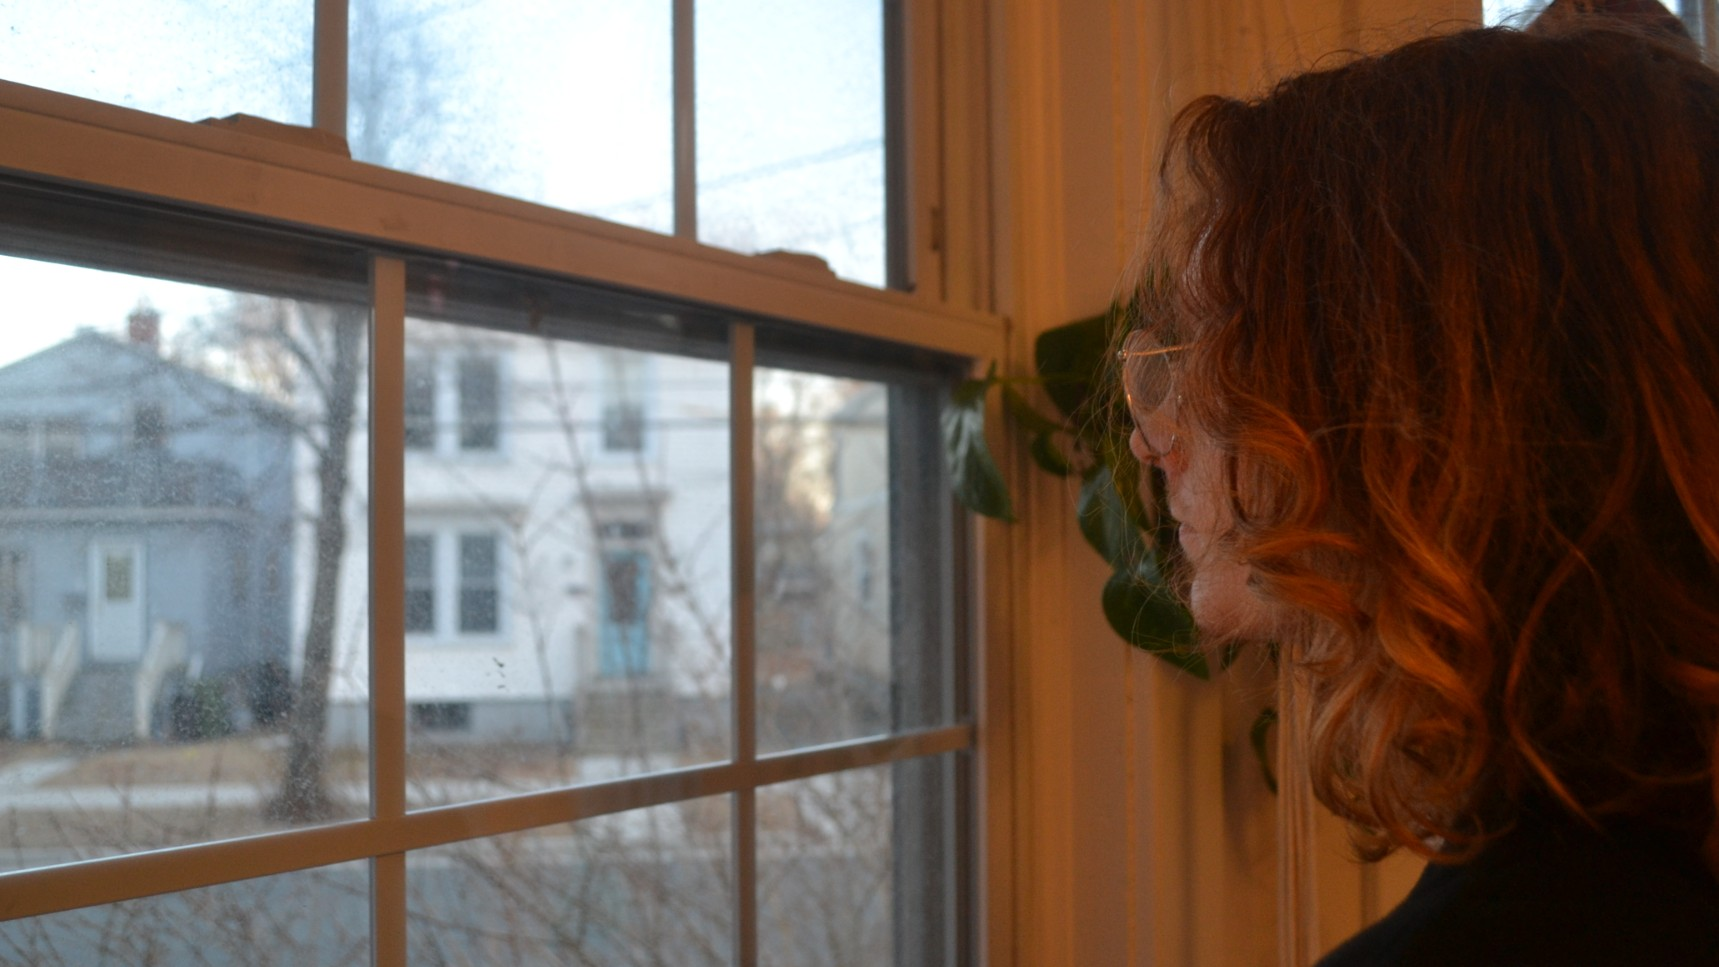 Luke Cameron looks out his window in Halifax. Nova Scotians are encouraged to practice social distancing to prevent the spread of COVID-19.